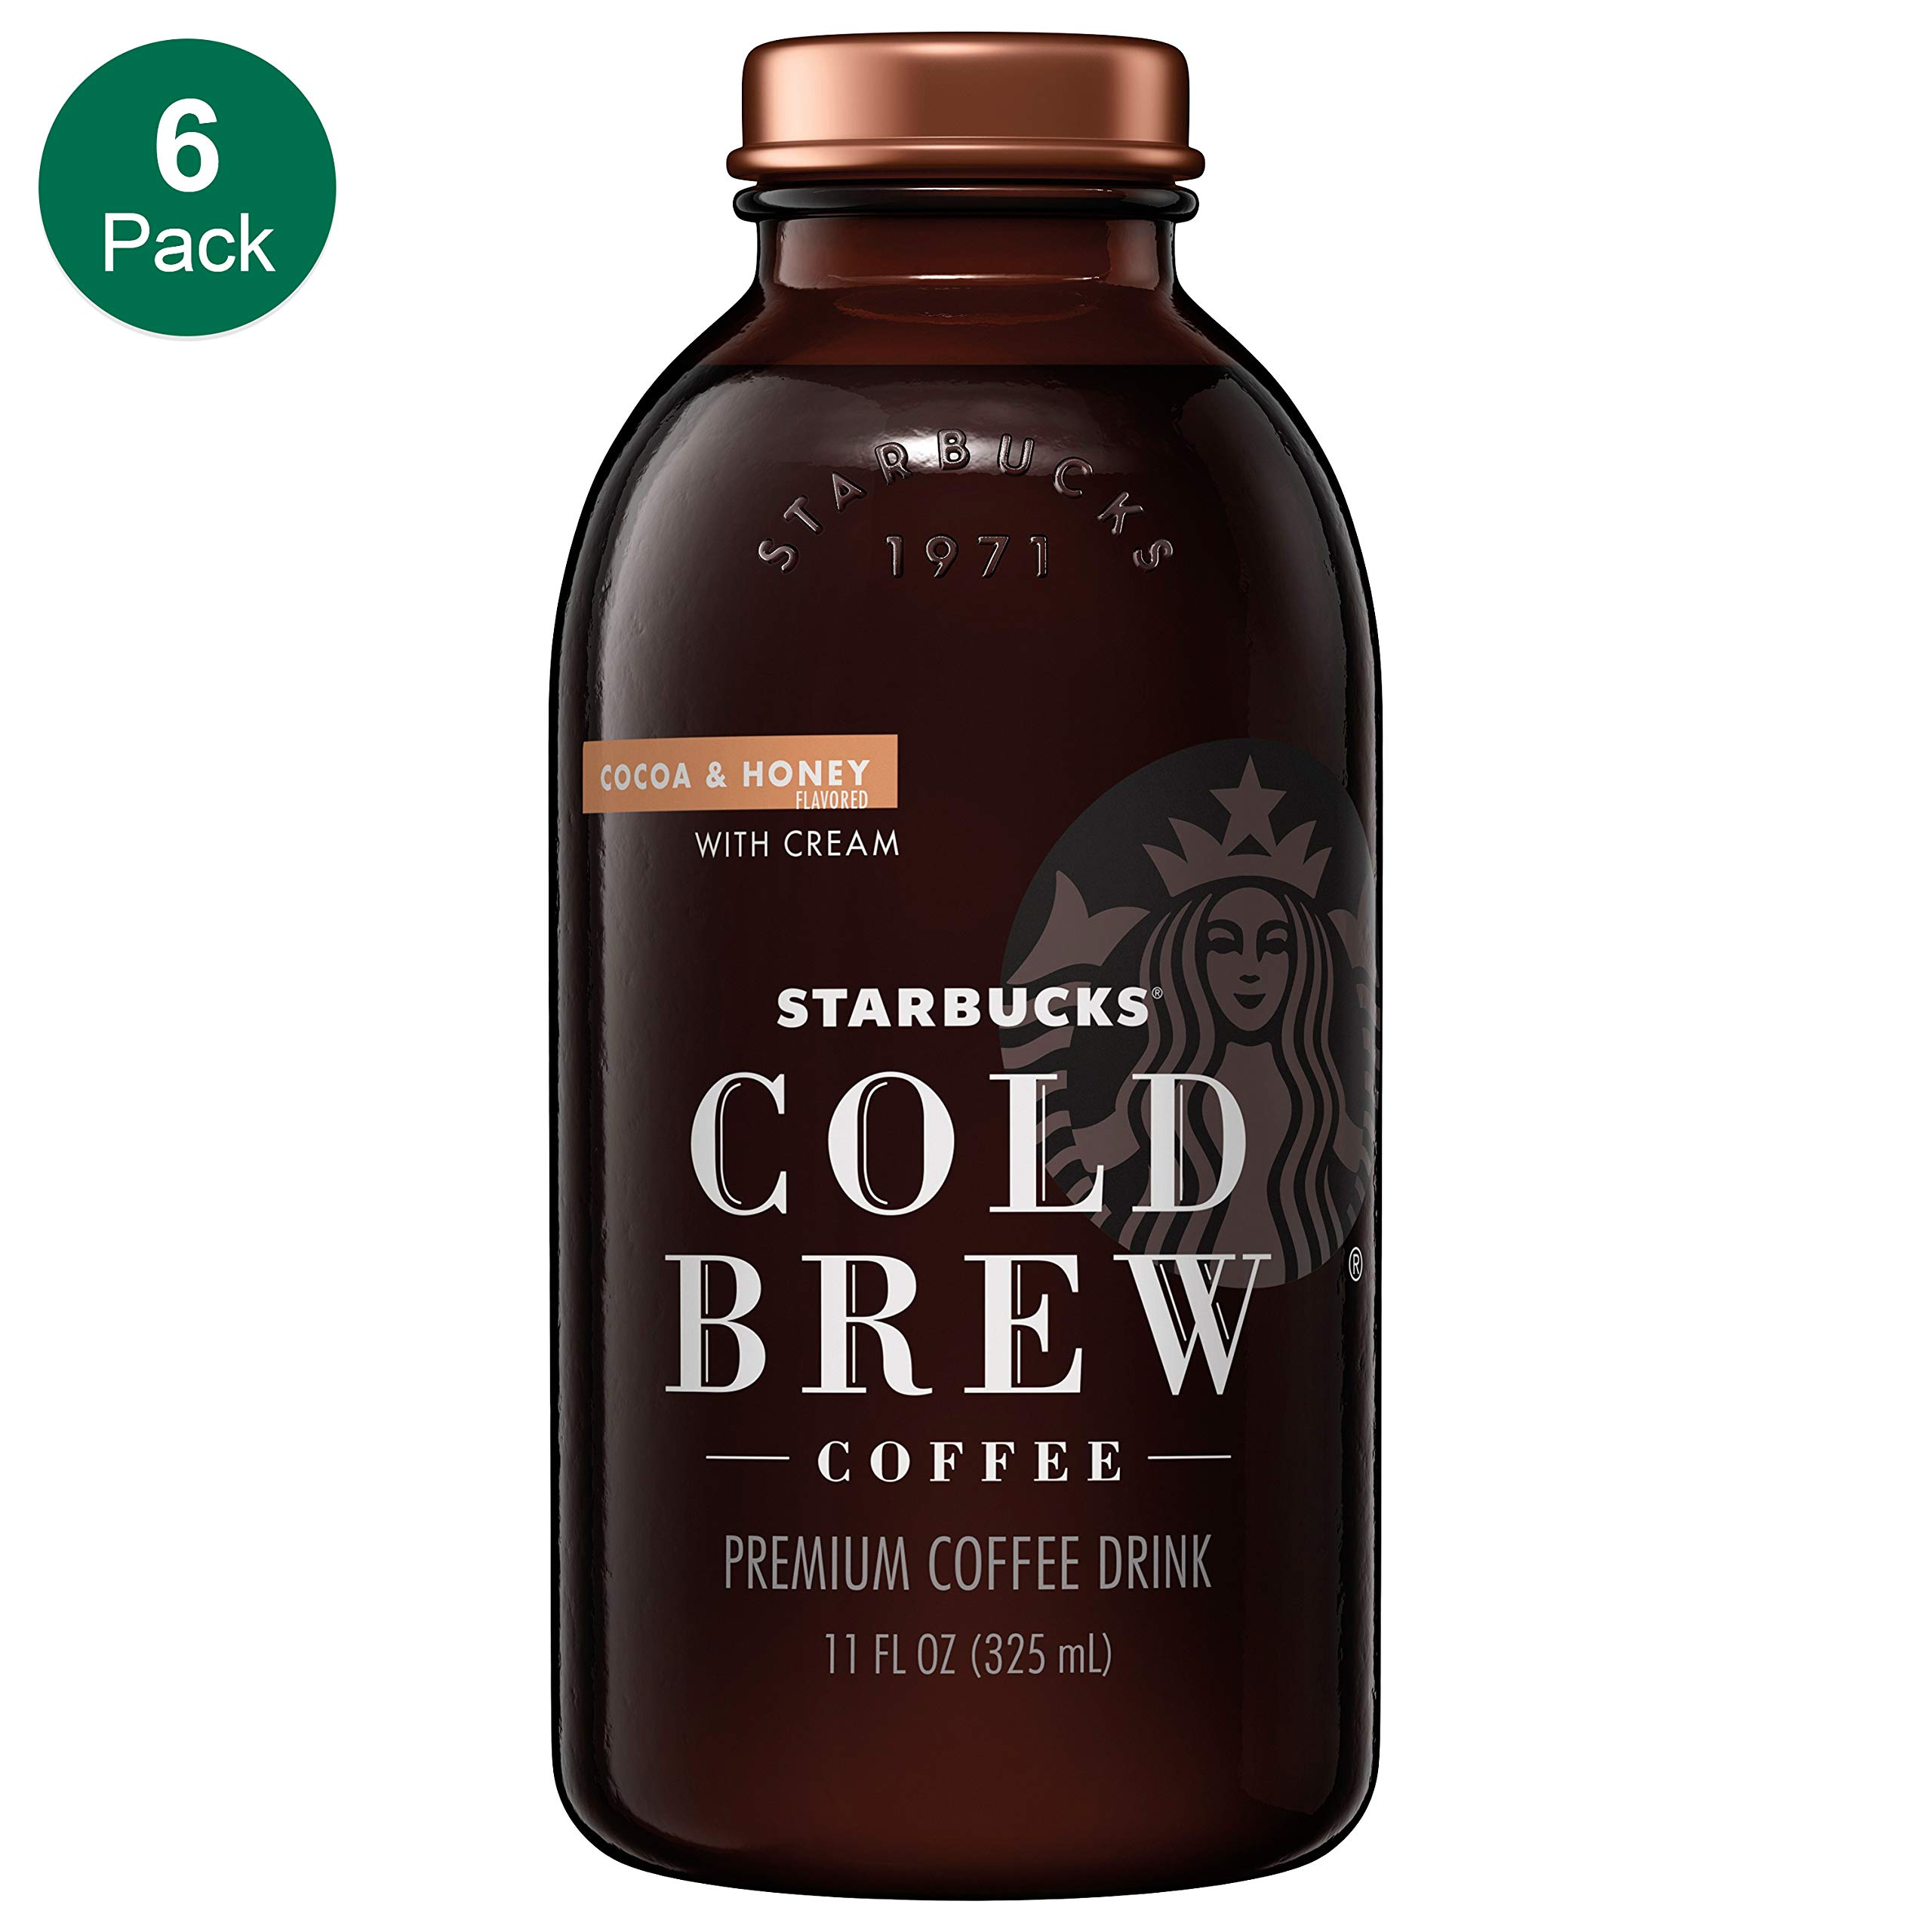 Starbucks Cold Brew Coffee, Cocoa & Honey with Cream, 11 Fl oz Glass Bottles, 6 Count by Starbucks